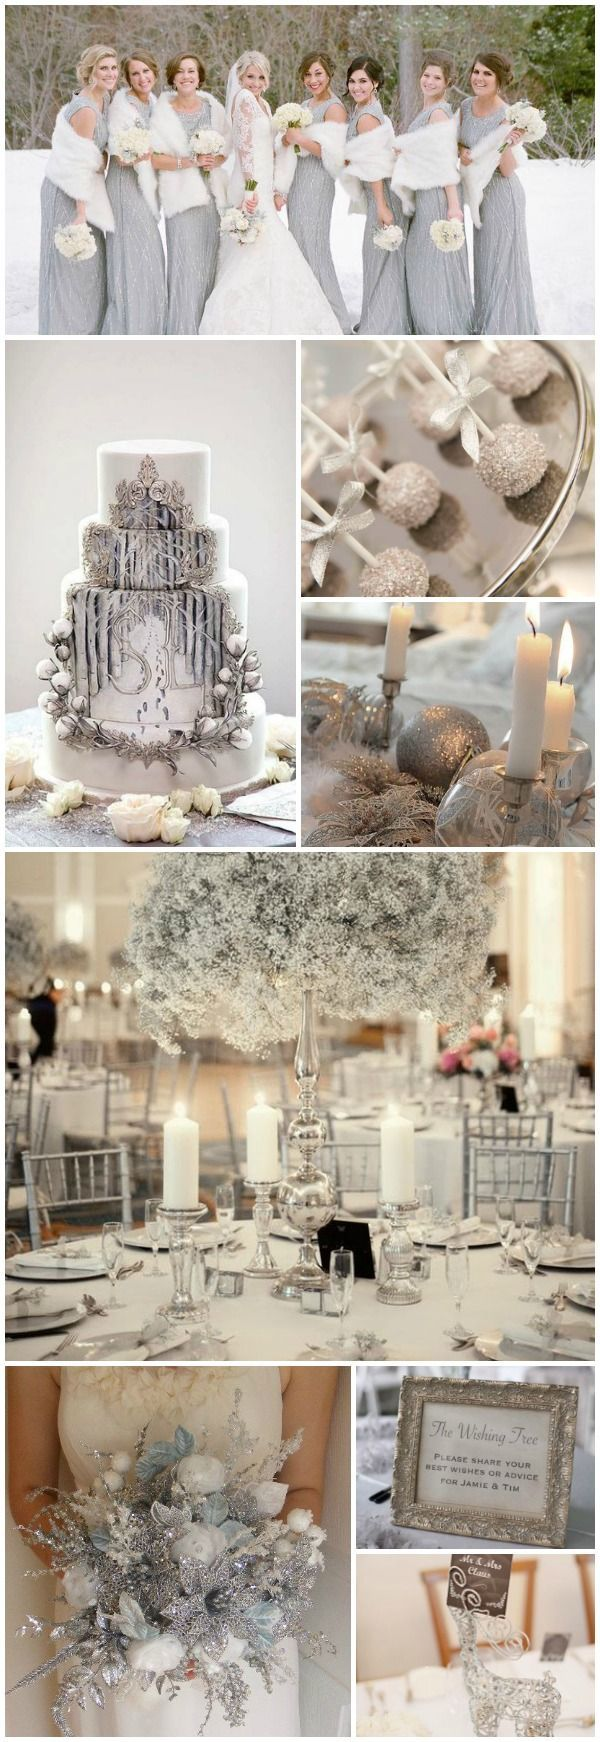 Exquisite Silver and White Winter Wedding Decorations | Wedding ...